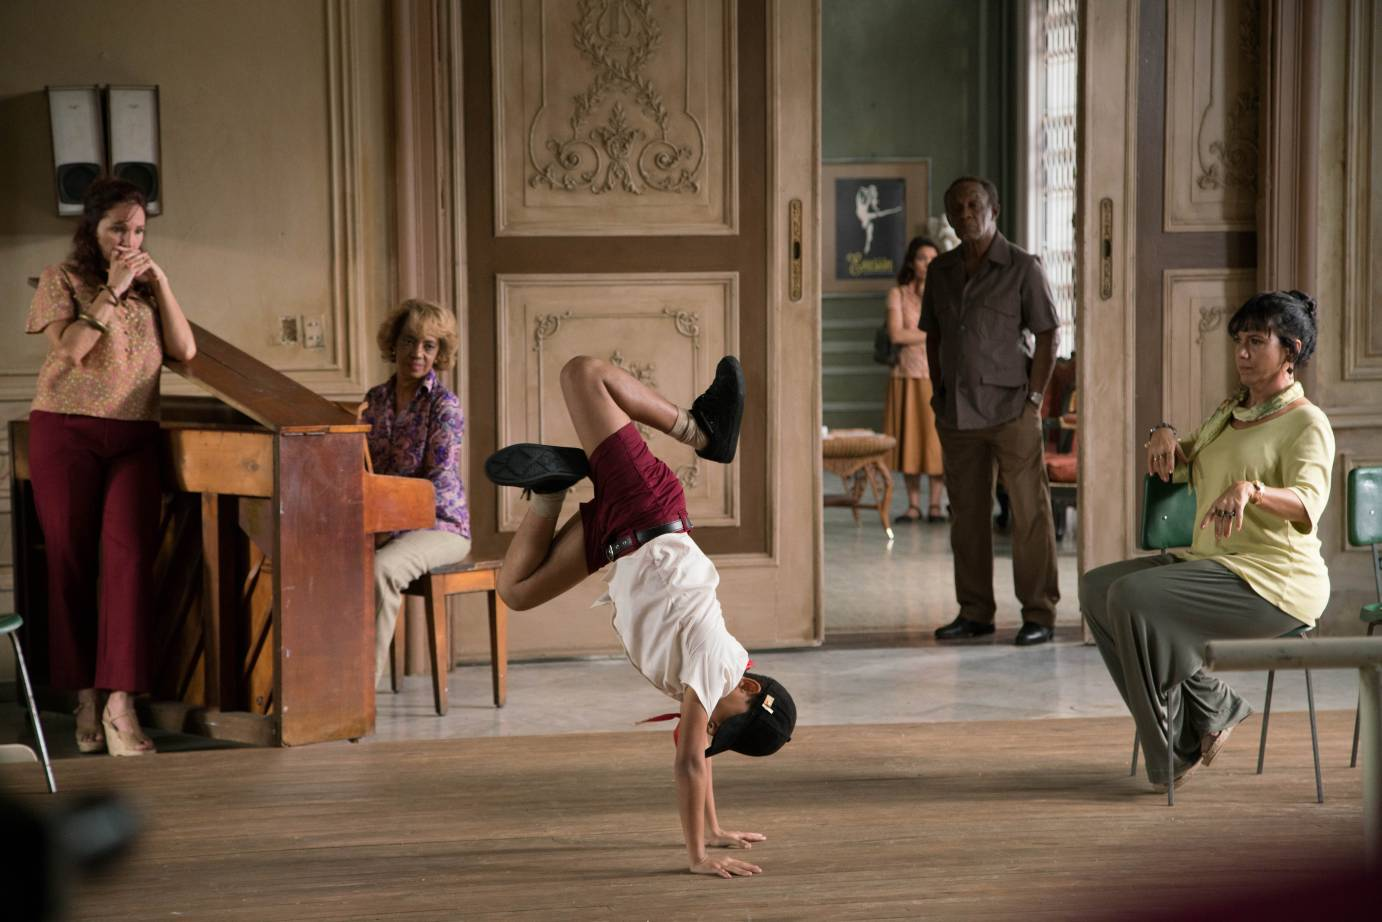 Carlos Acosta breakdancing in front of people in the movie version of his life